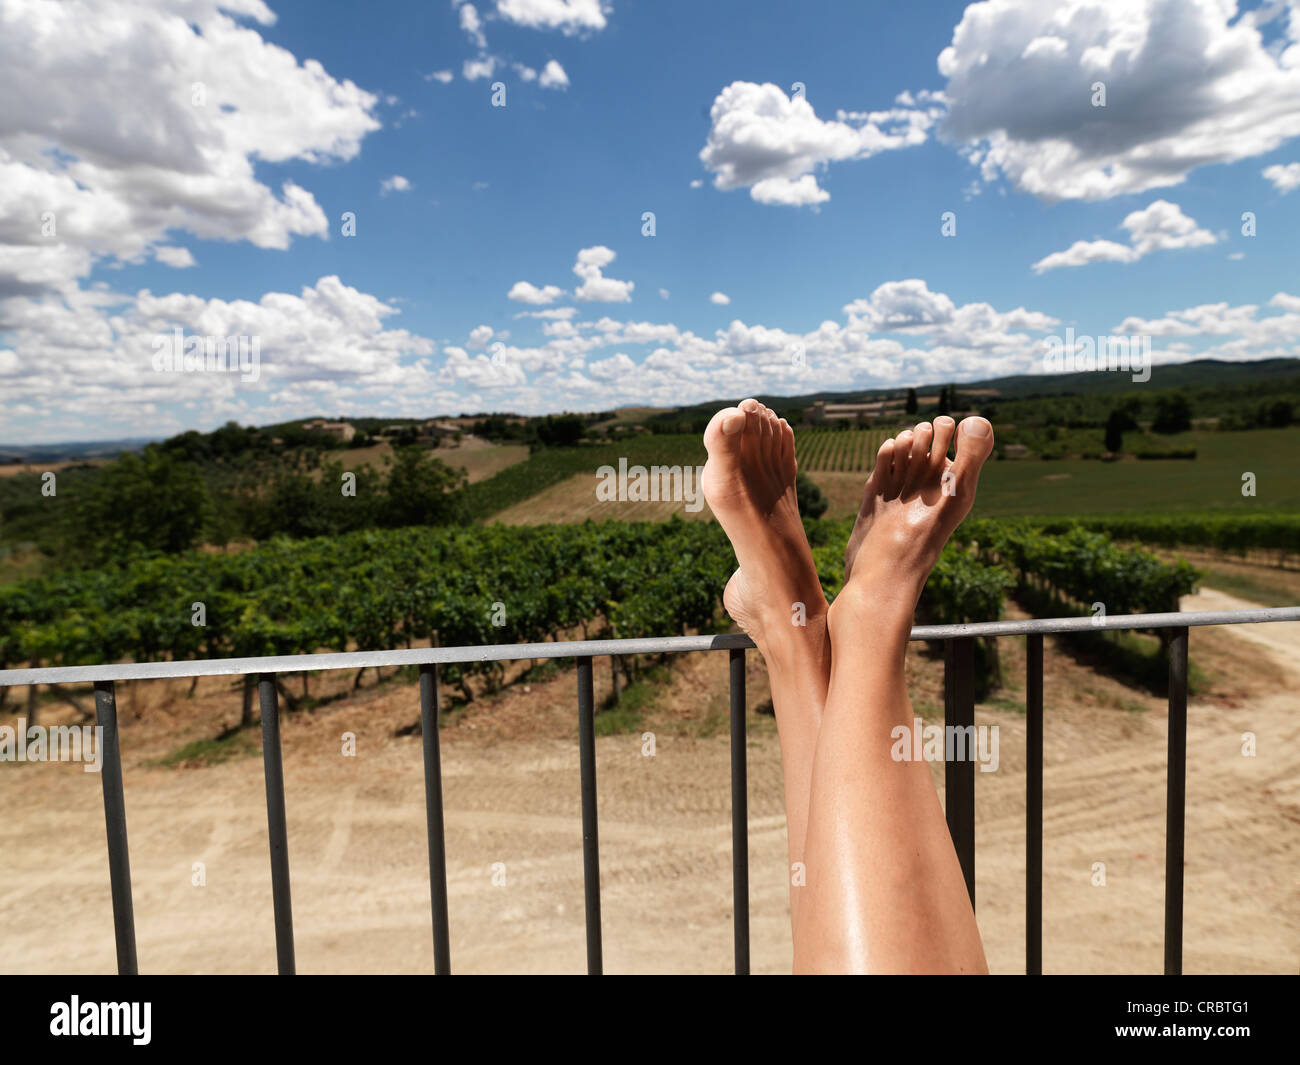 Woman resting feet on railing outdoors - Stock Image